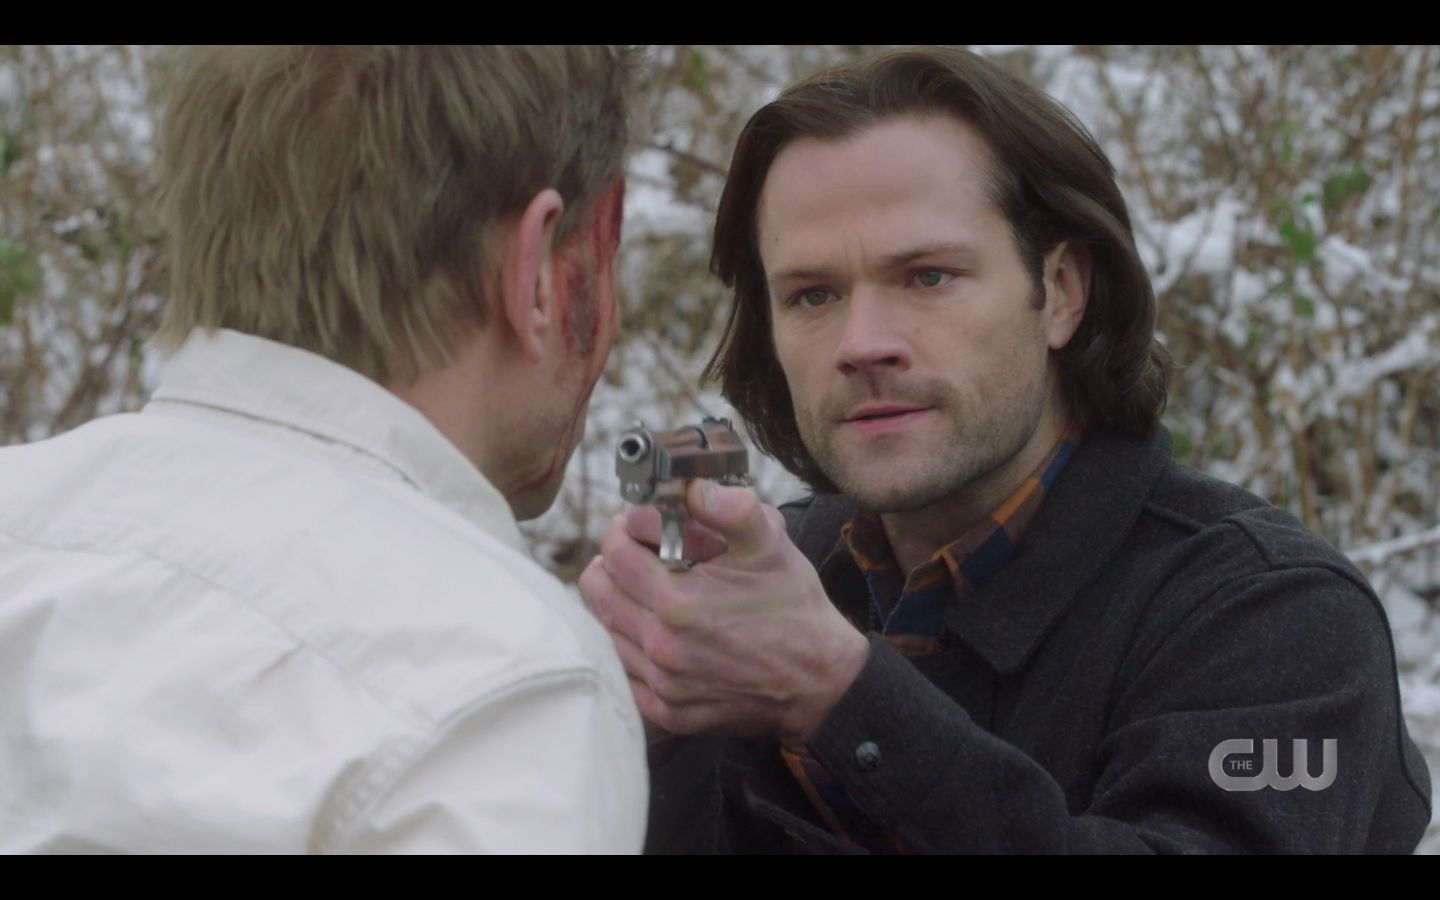 Sam Winchester with gun on Nick from behind SPN Game Night